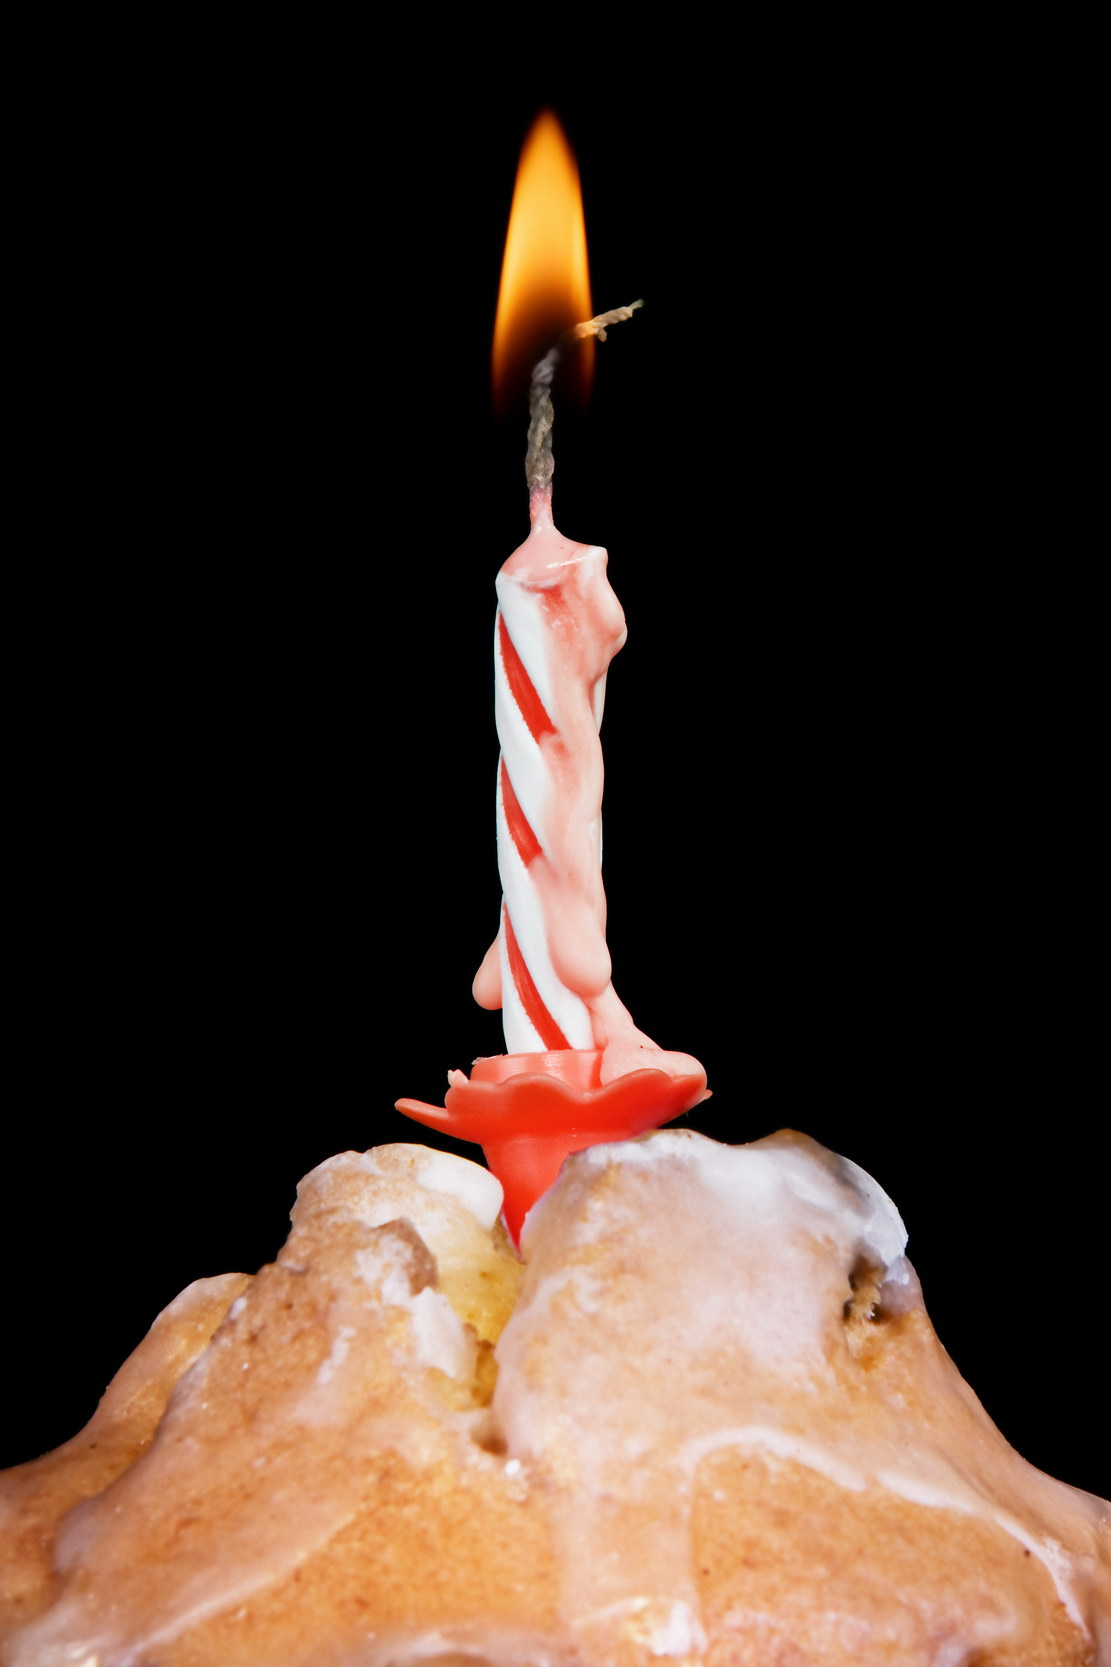 Cupcake with burning candle photo